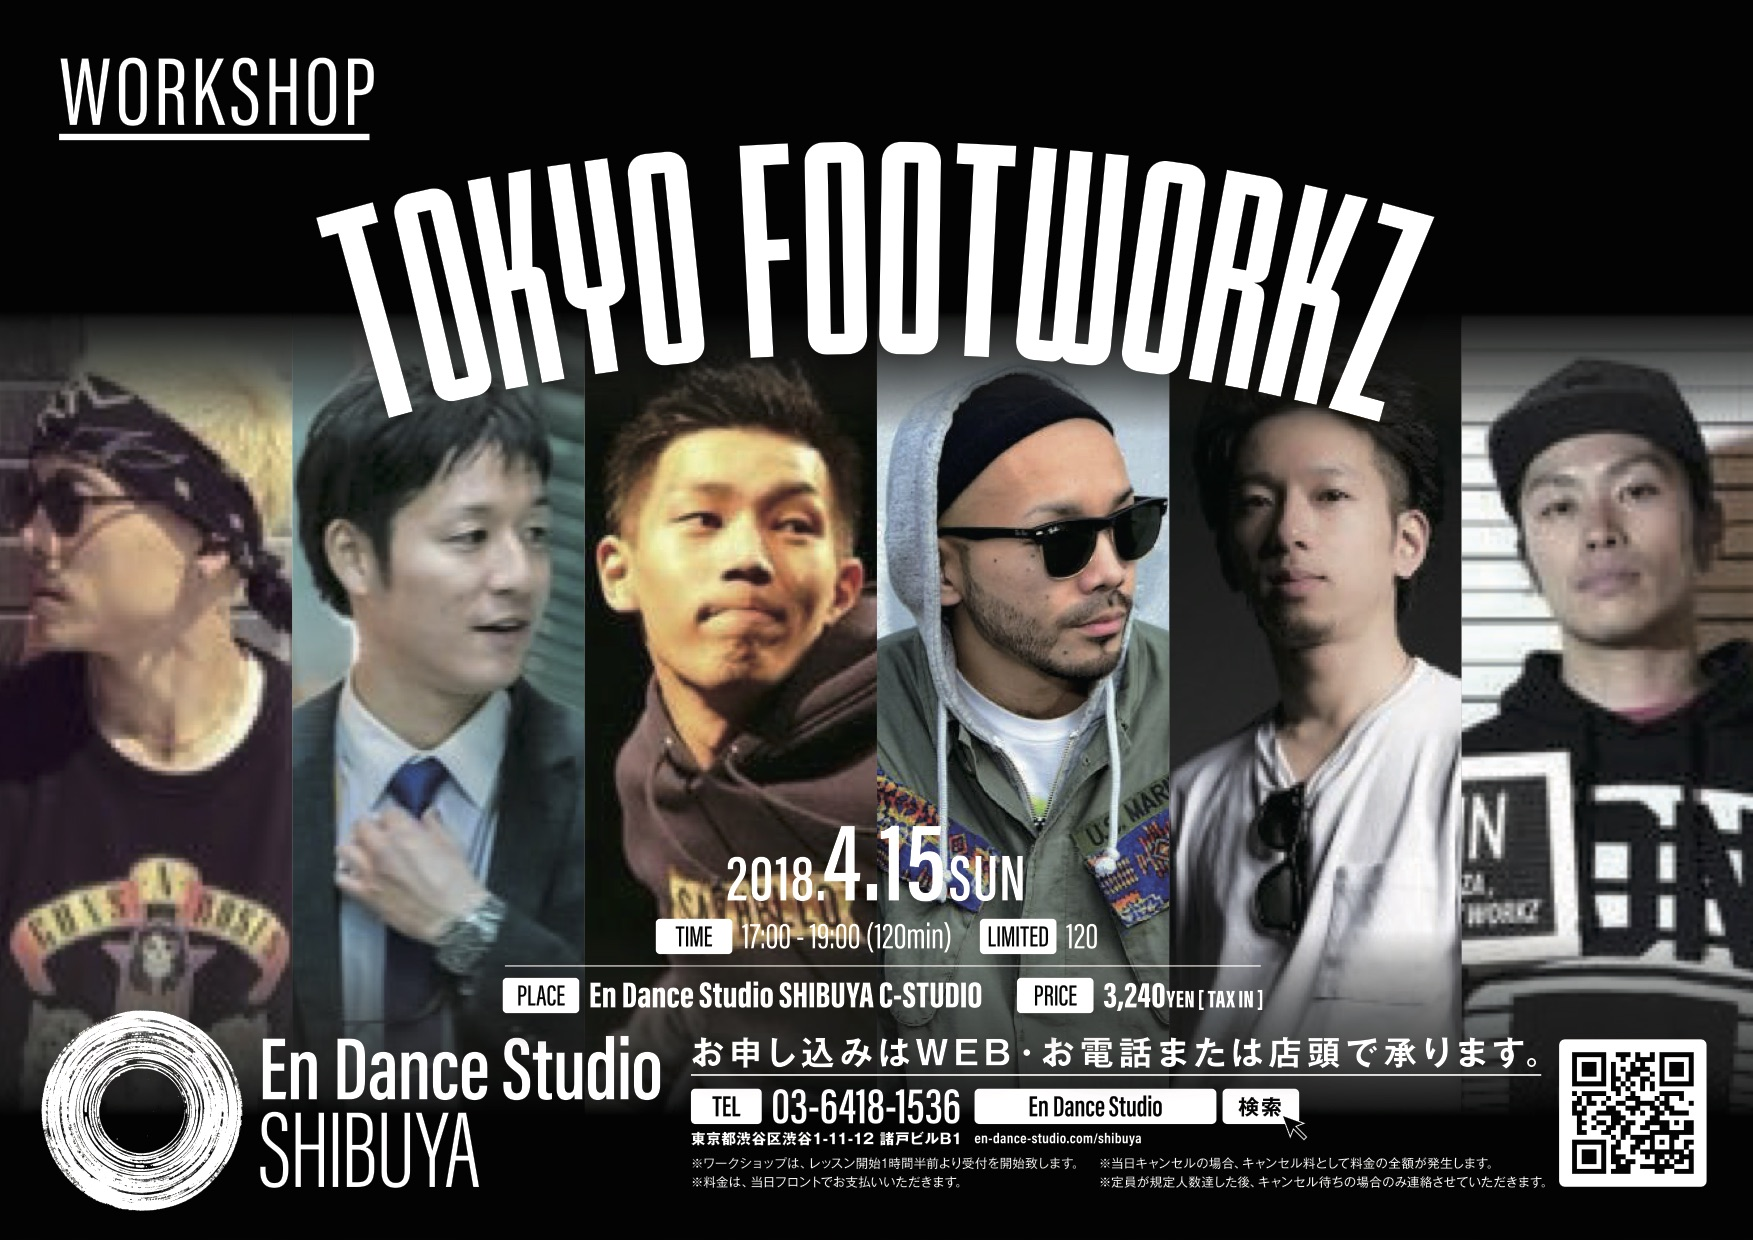 Be025 TOKYO FOOTWORKZ